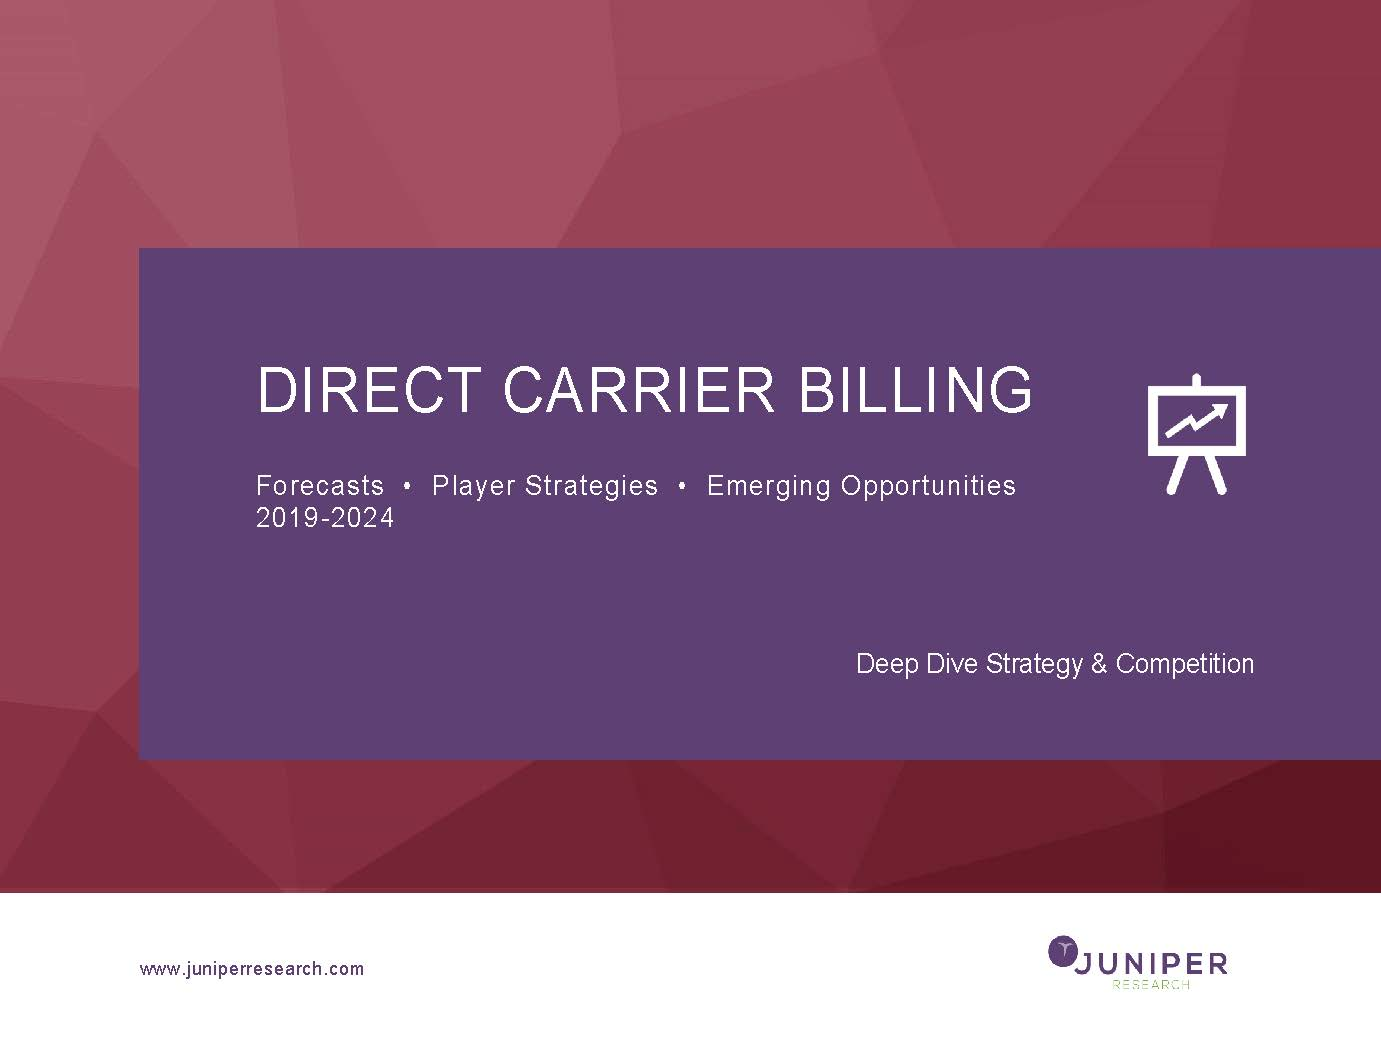 Direct Carrier Billing - Deep Dive Strategy & Competition 2019-2024